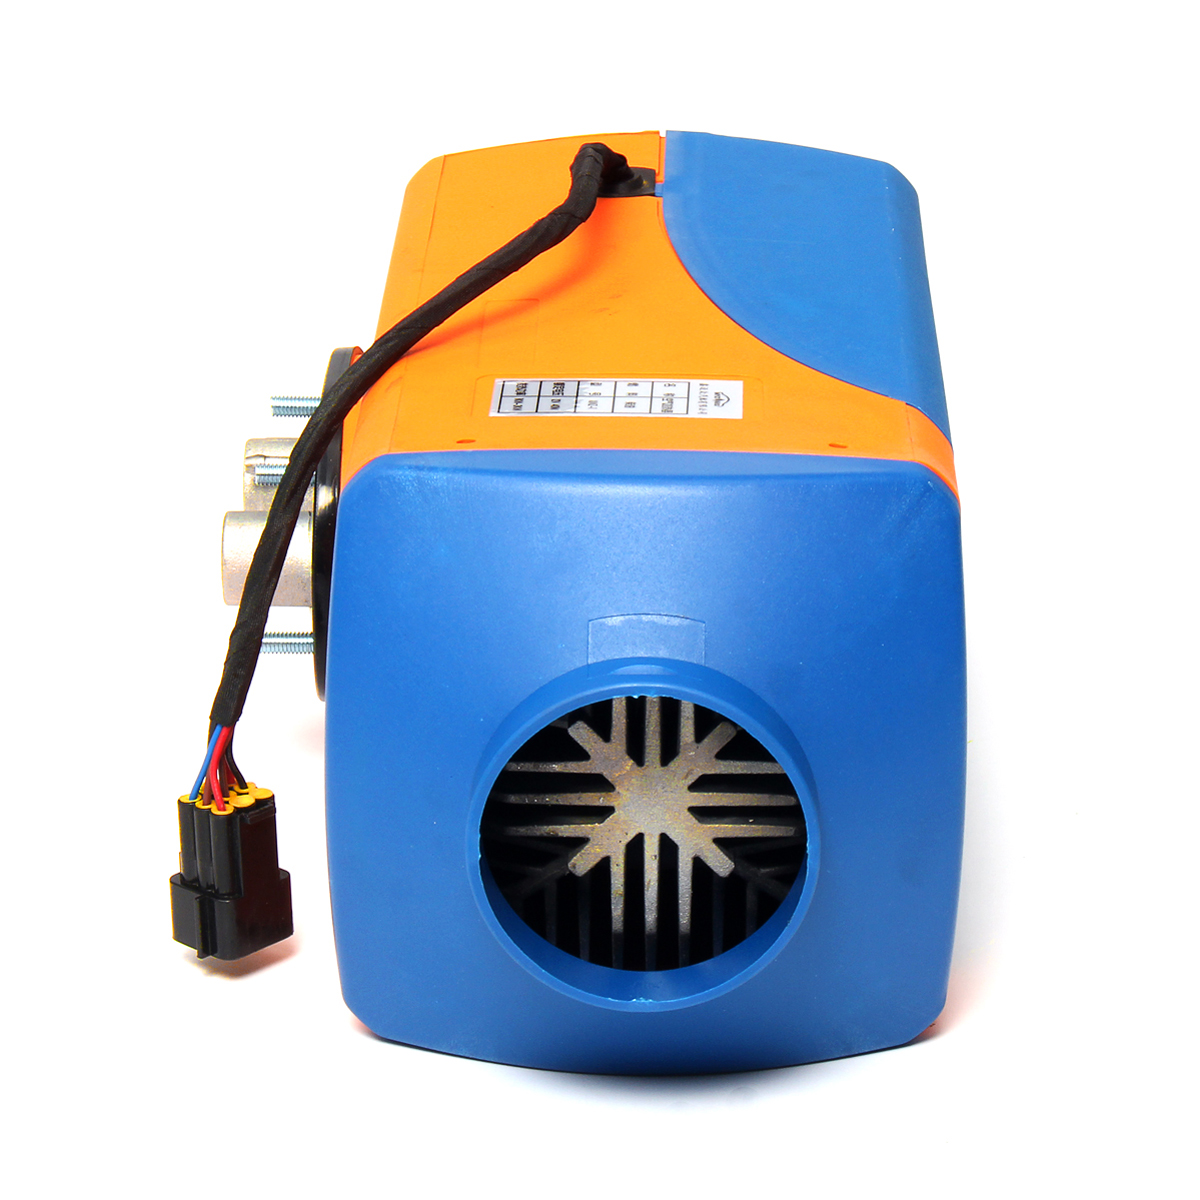 12V/24V 3KW Diesel Air Parking Heater Diesel Heating Air Heater LCD Screen Switch with Silencer